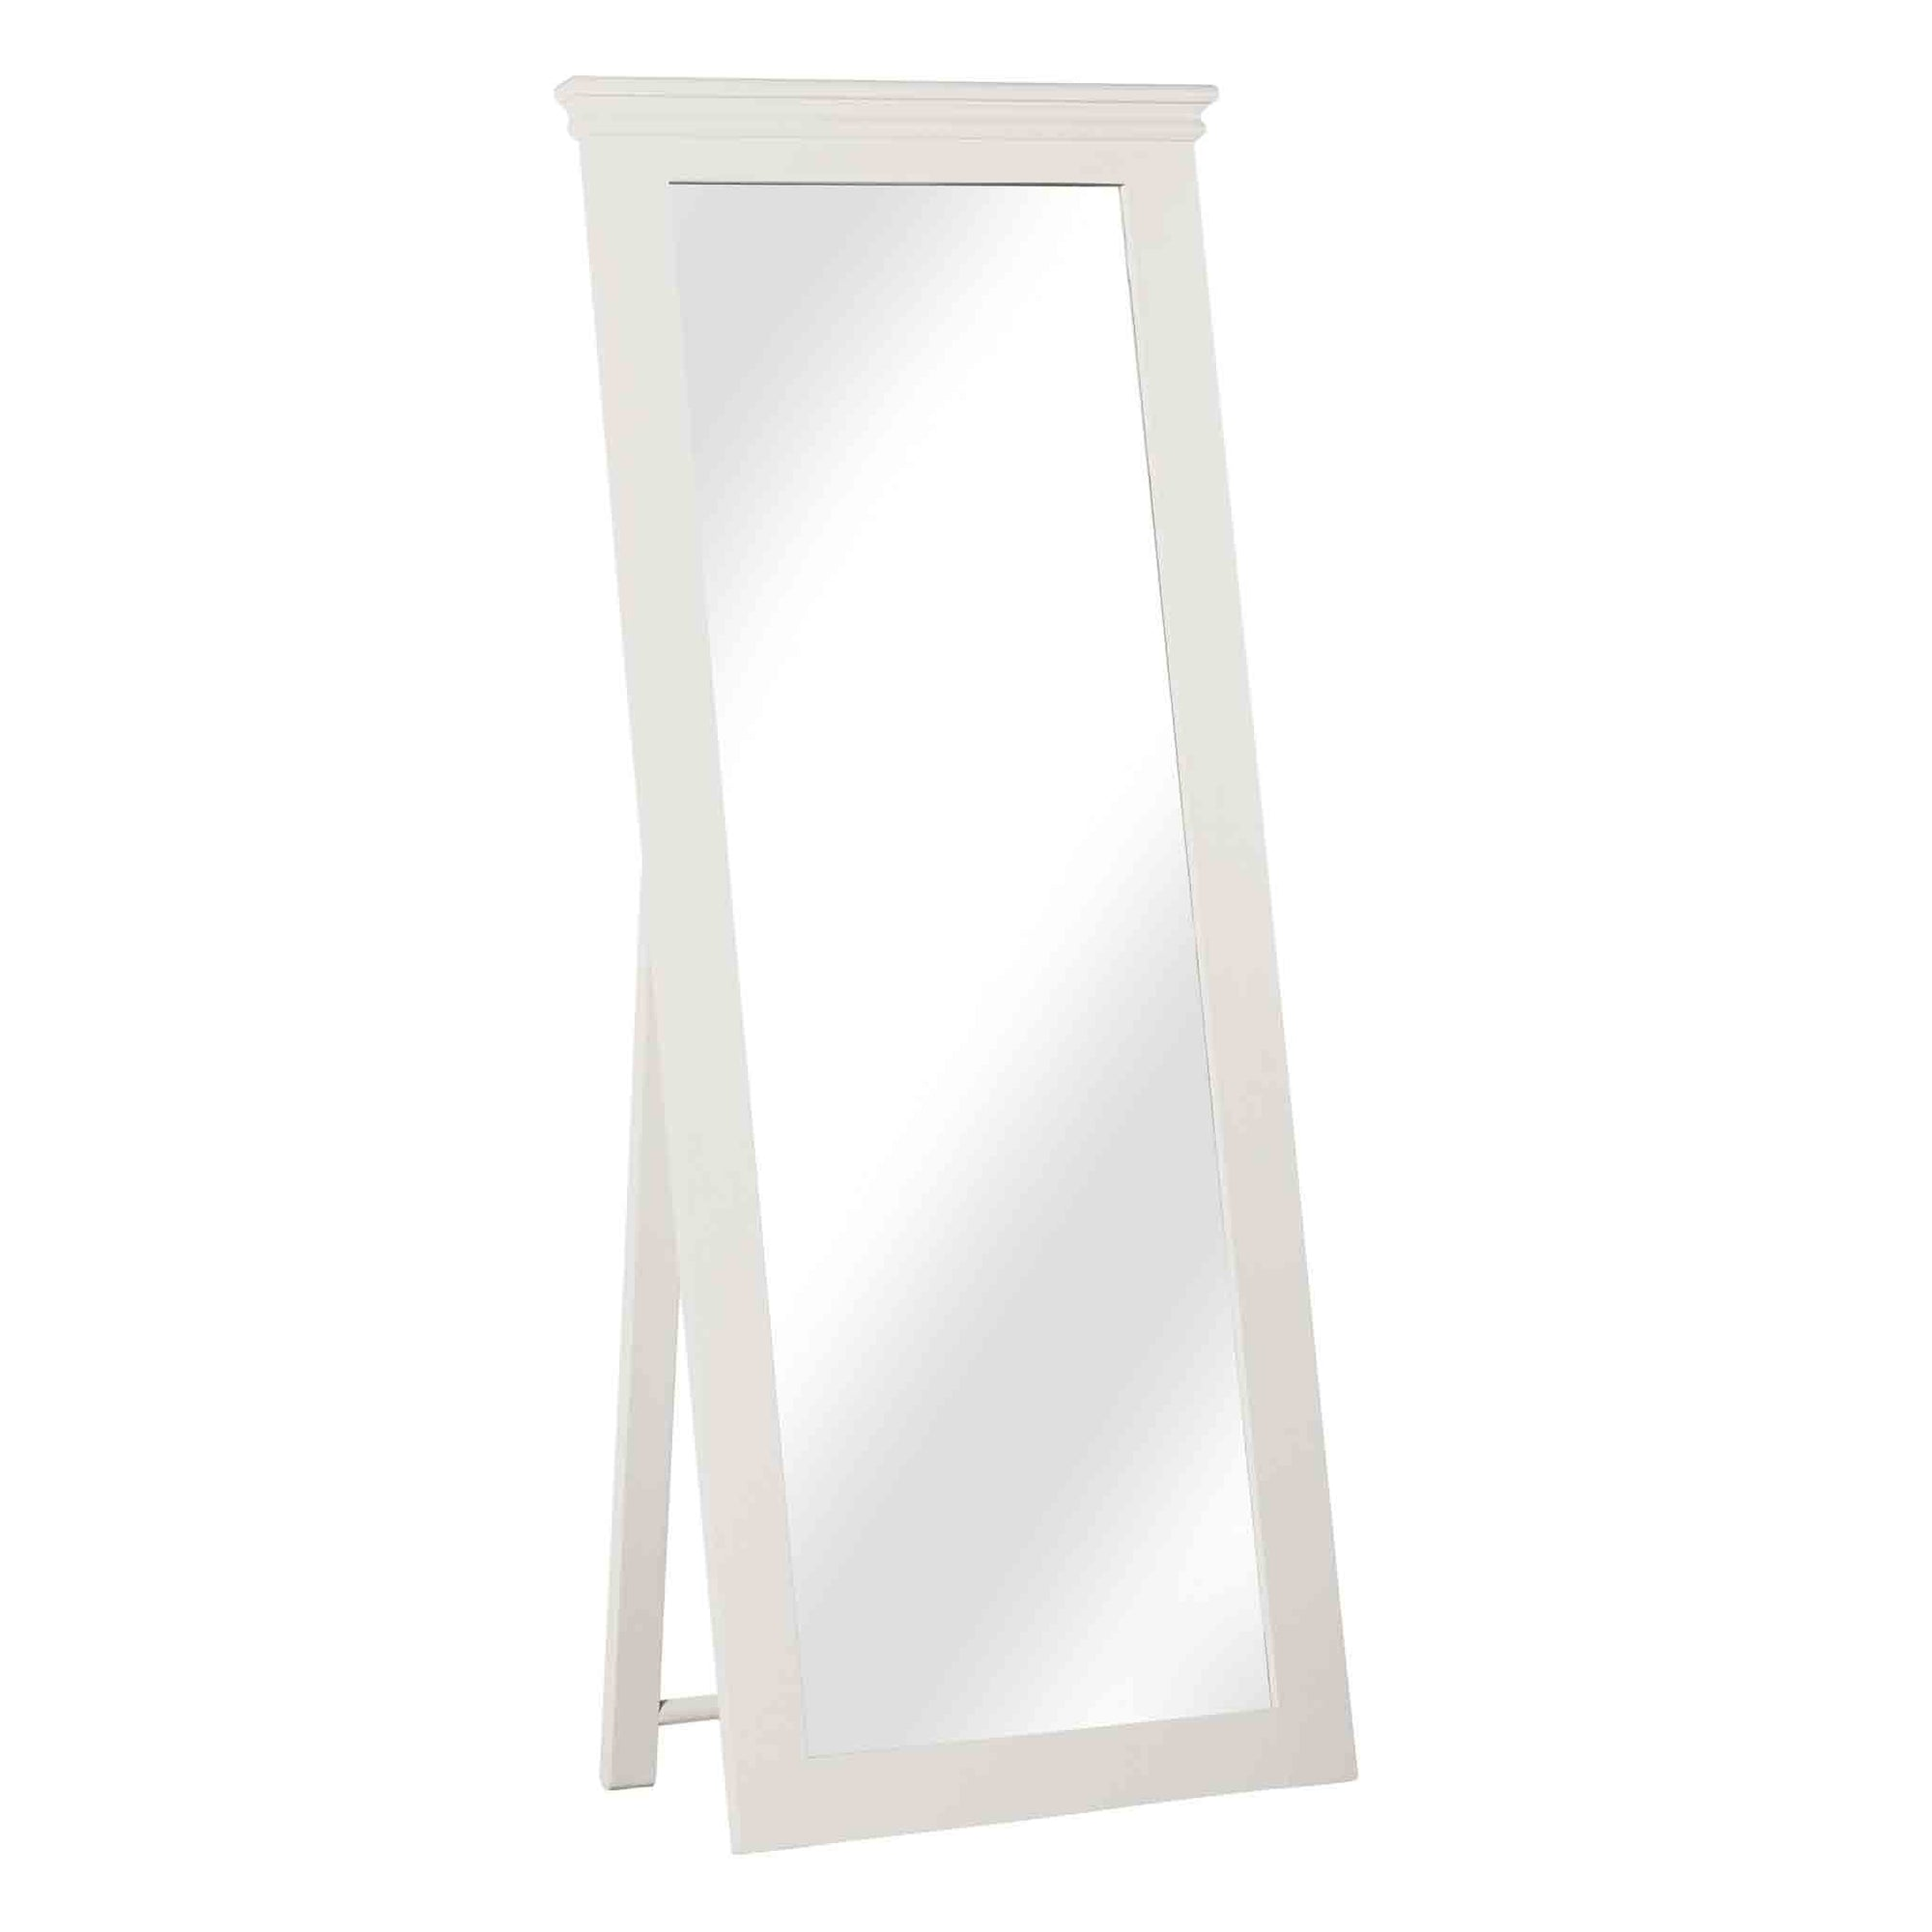 Melrose White Tall Freestanding Cheval Mirror from Roseland Furniture